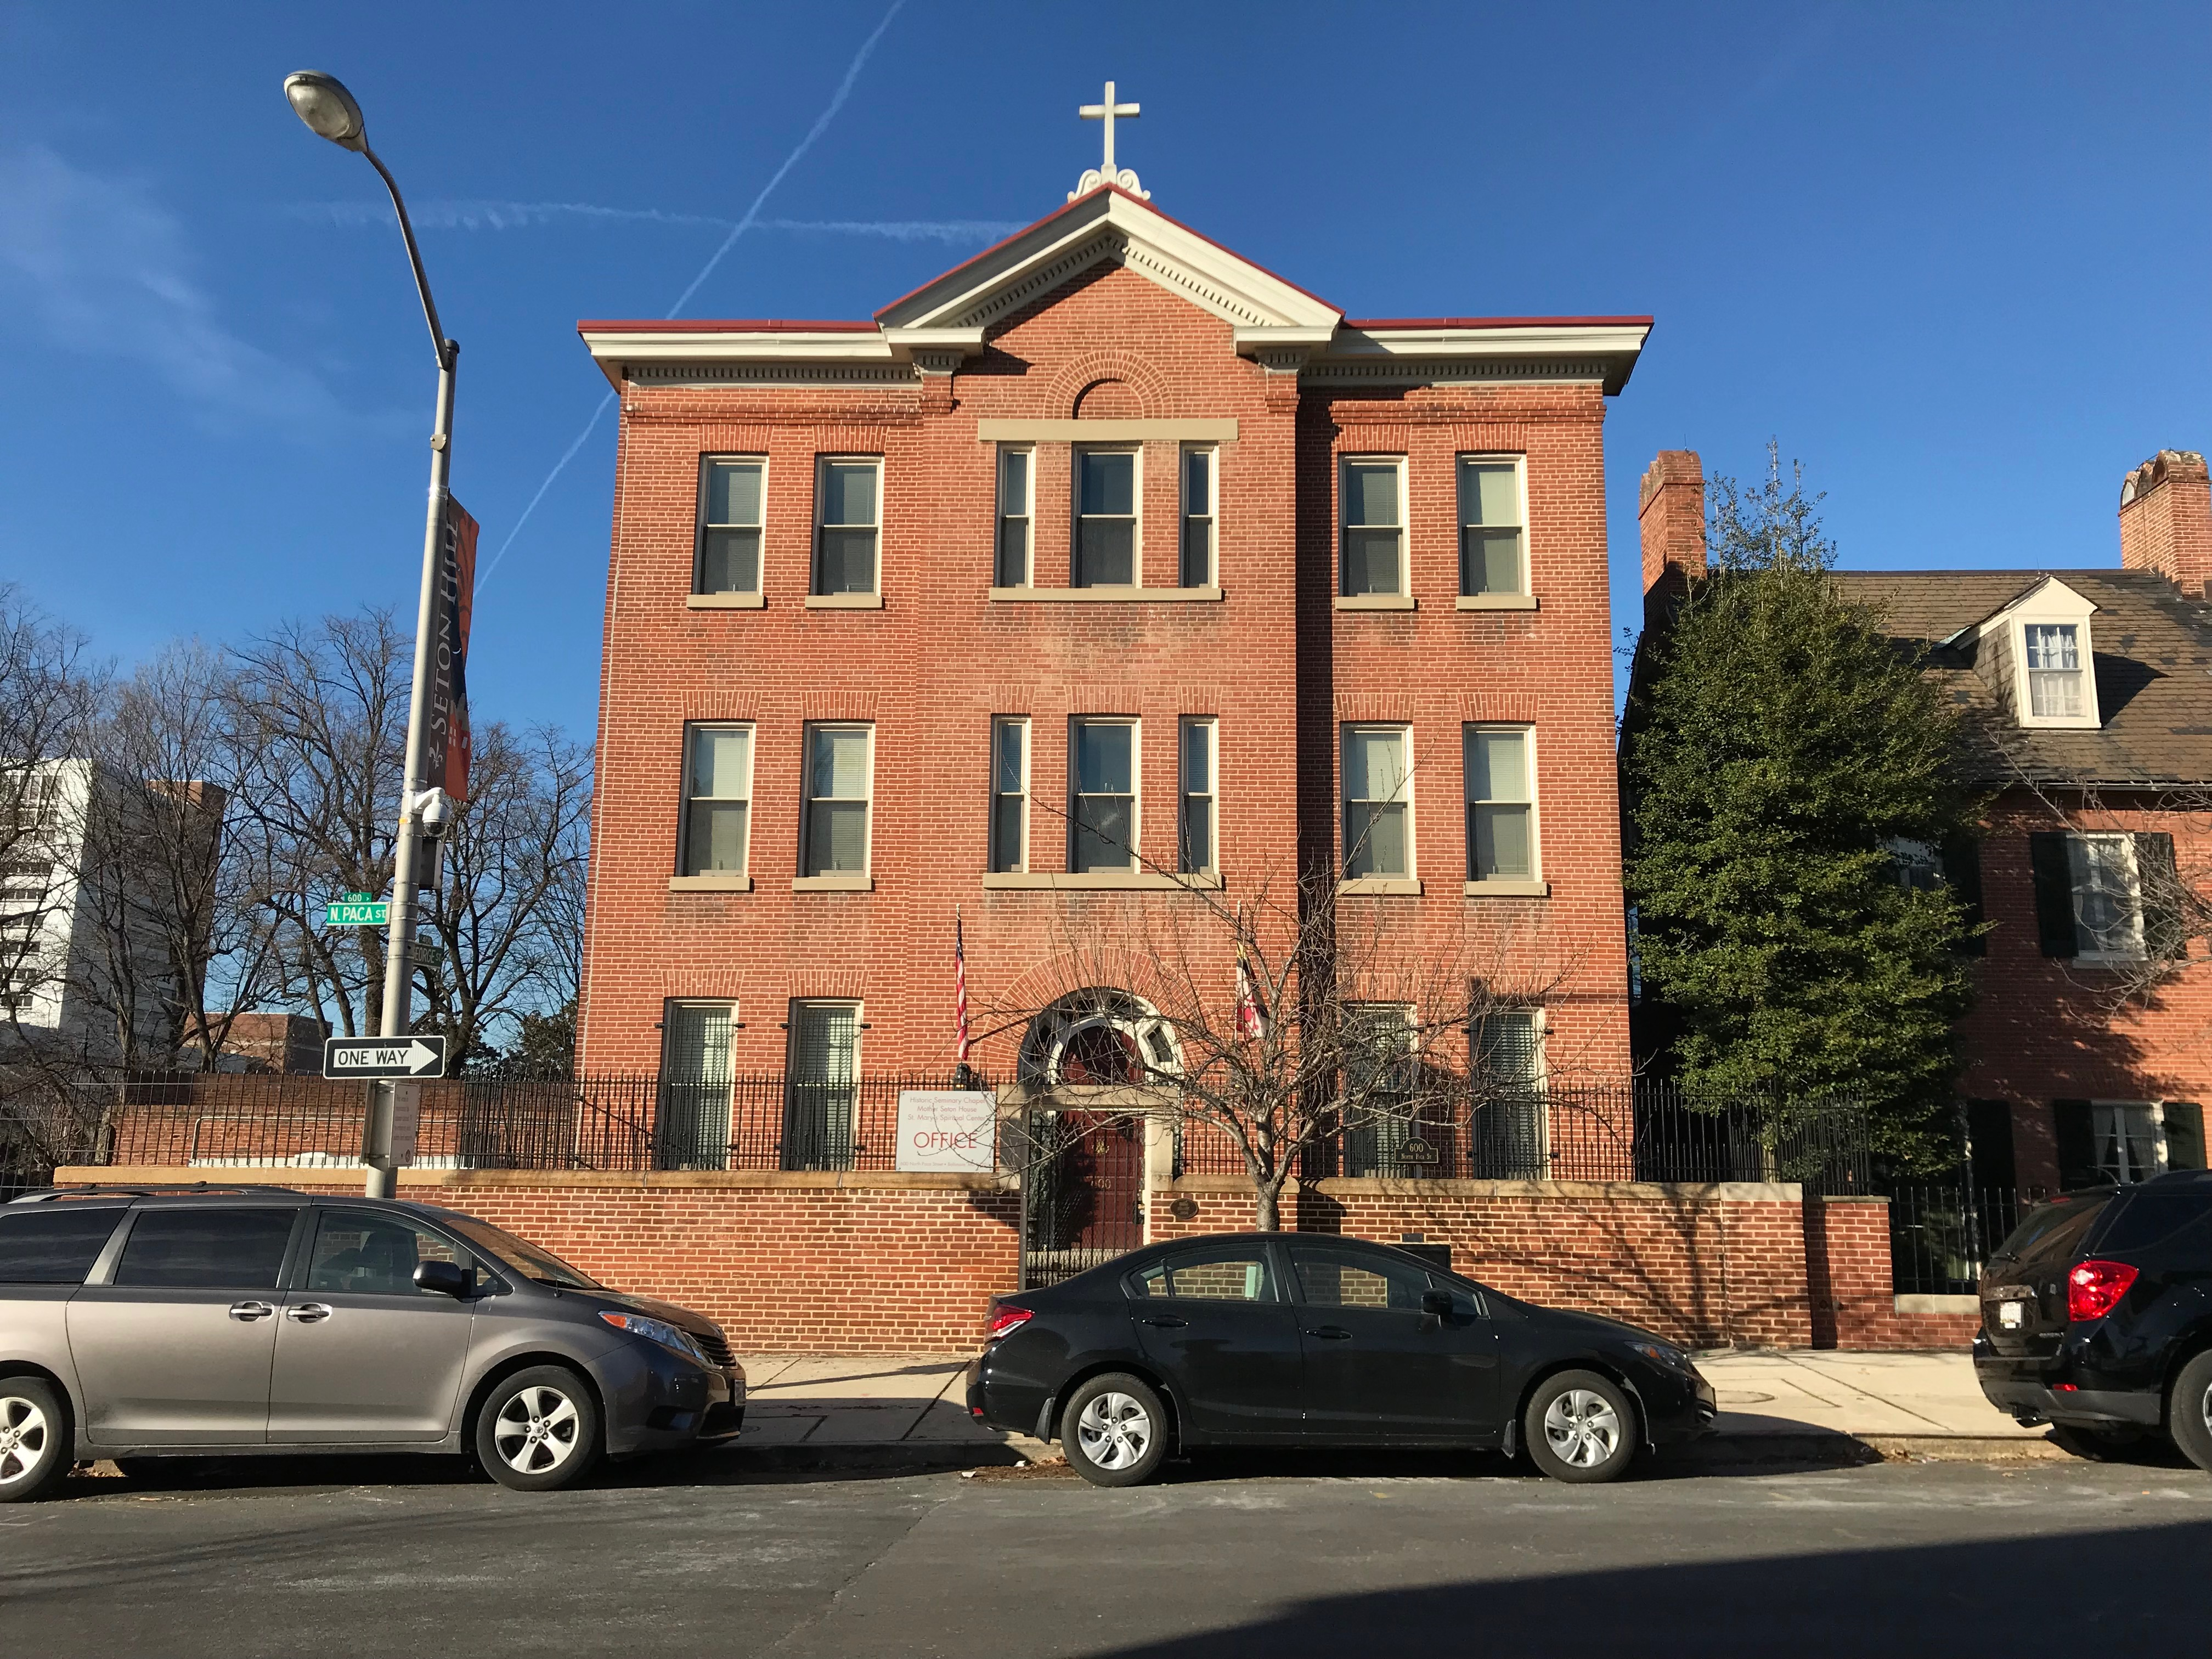 St. mary's spiritual center/former sisters of divine providence convent (1896), 600 n. paca street, baltimore, md 21201 photo